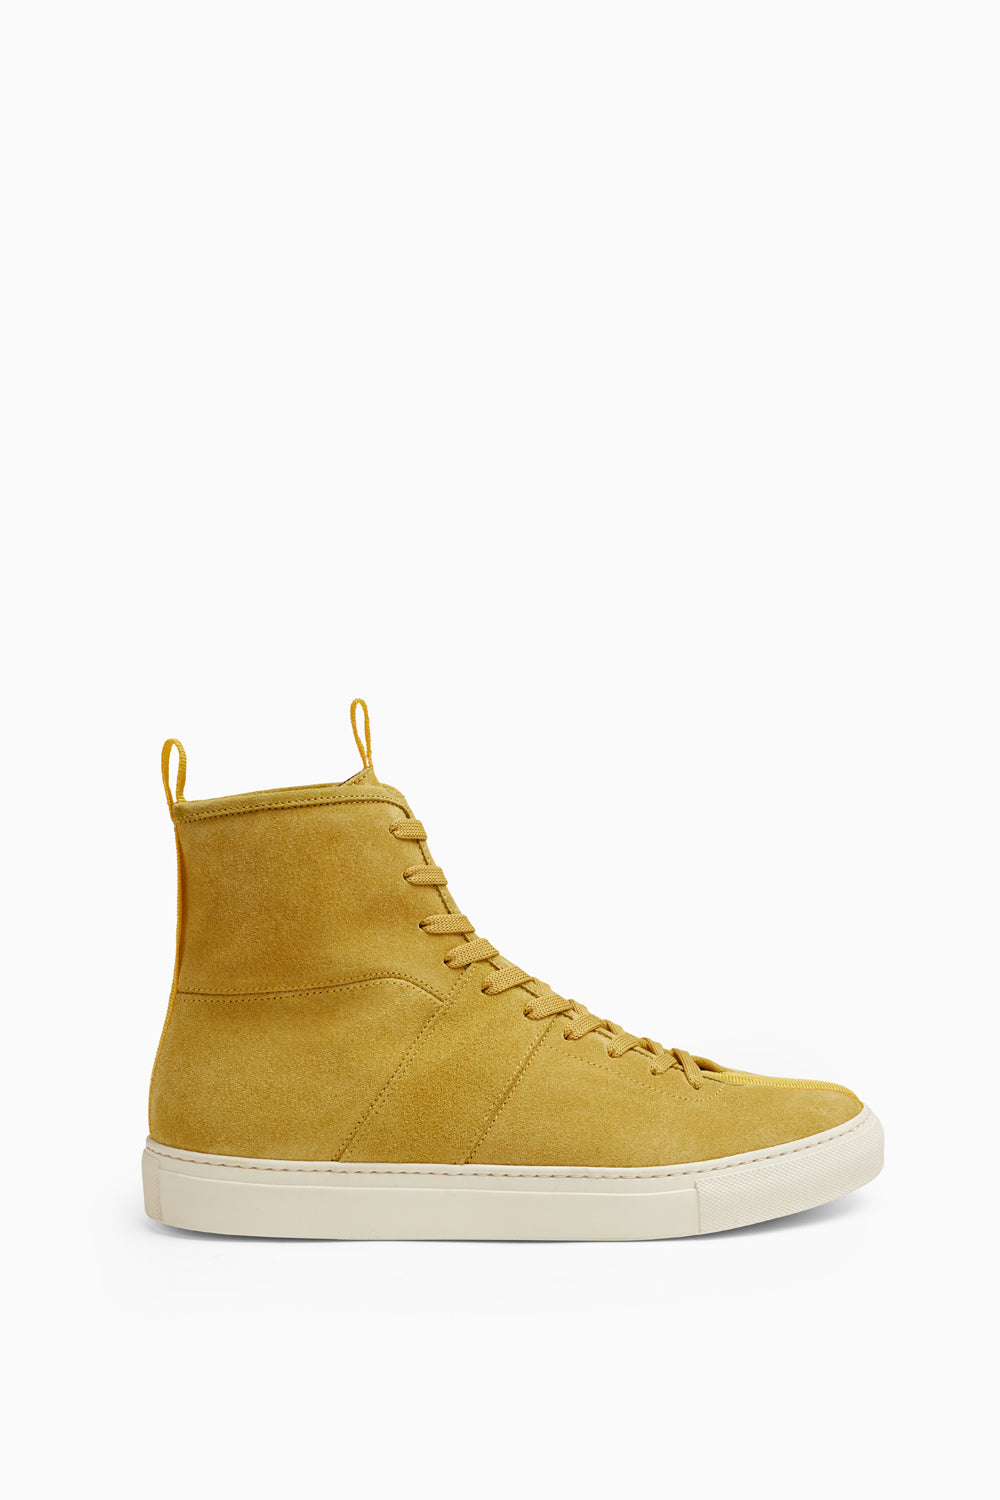 19488700f194b high top roamer in yellow by daniel patrick ...